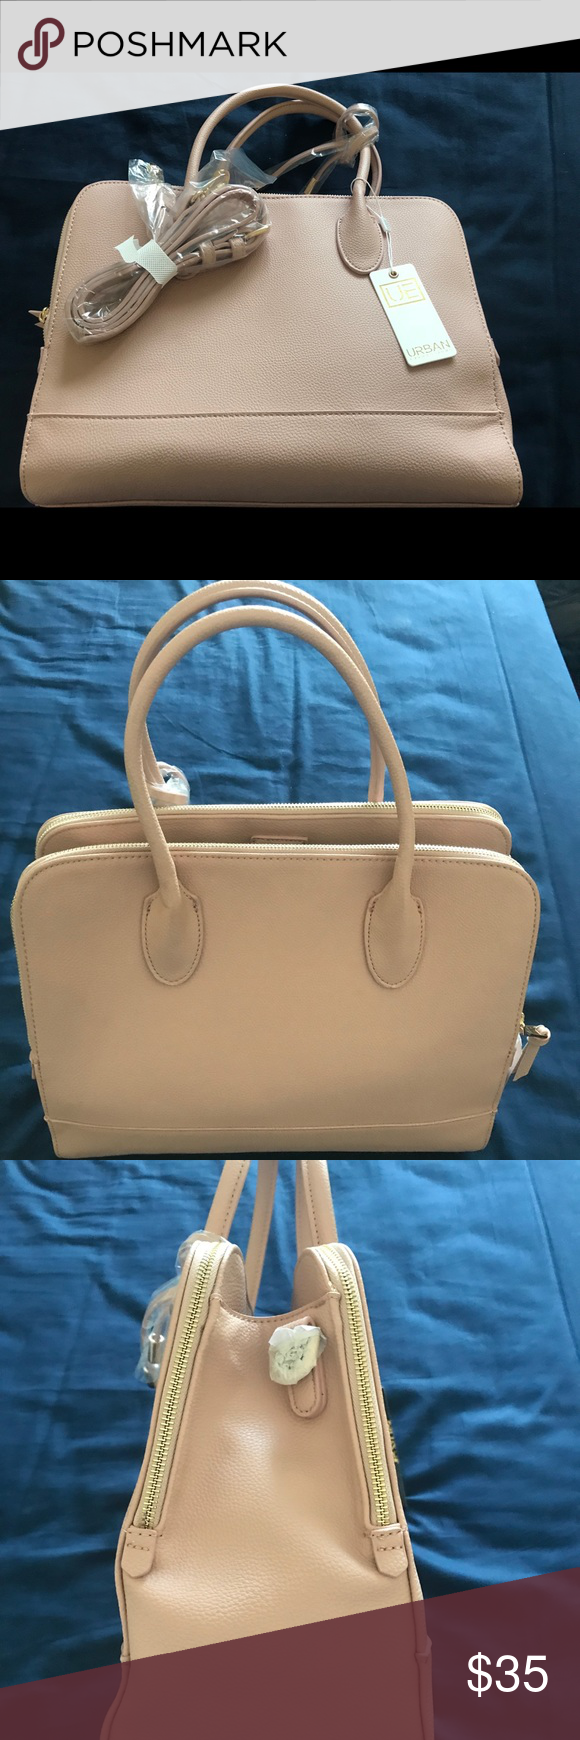 76ce31d6562 NWT Urban Expressions Oriana Double Zip Satchel This is a NWT never ...